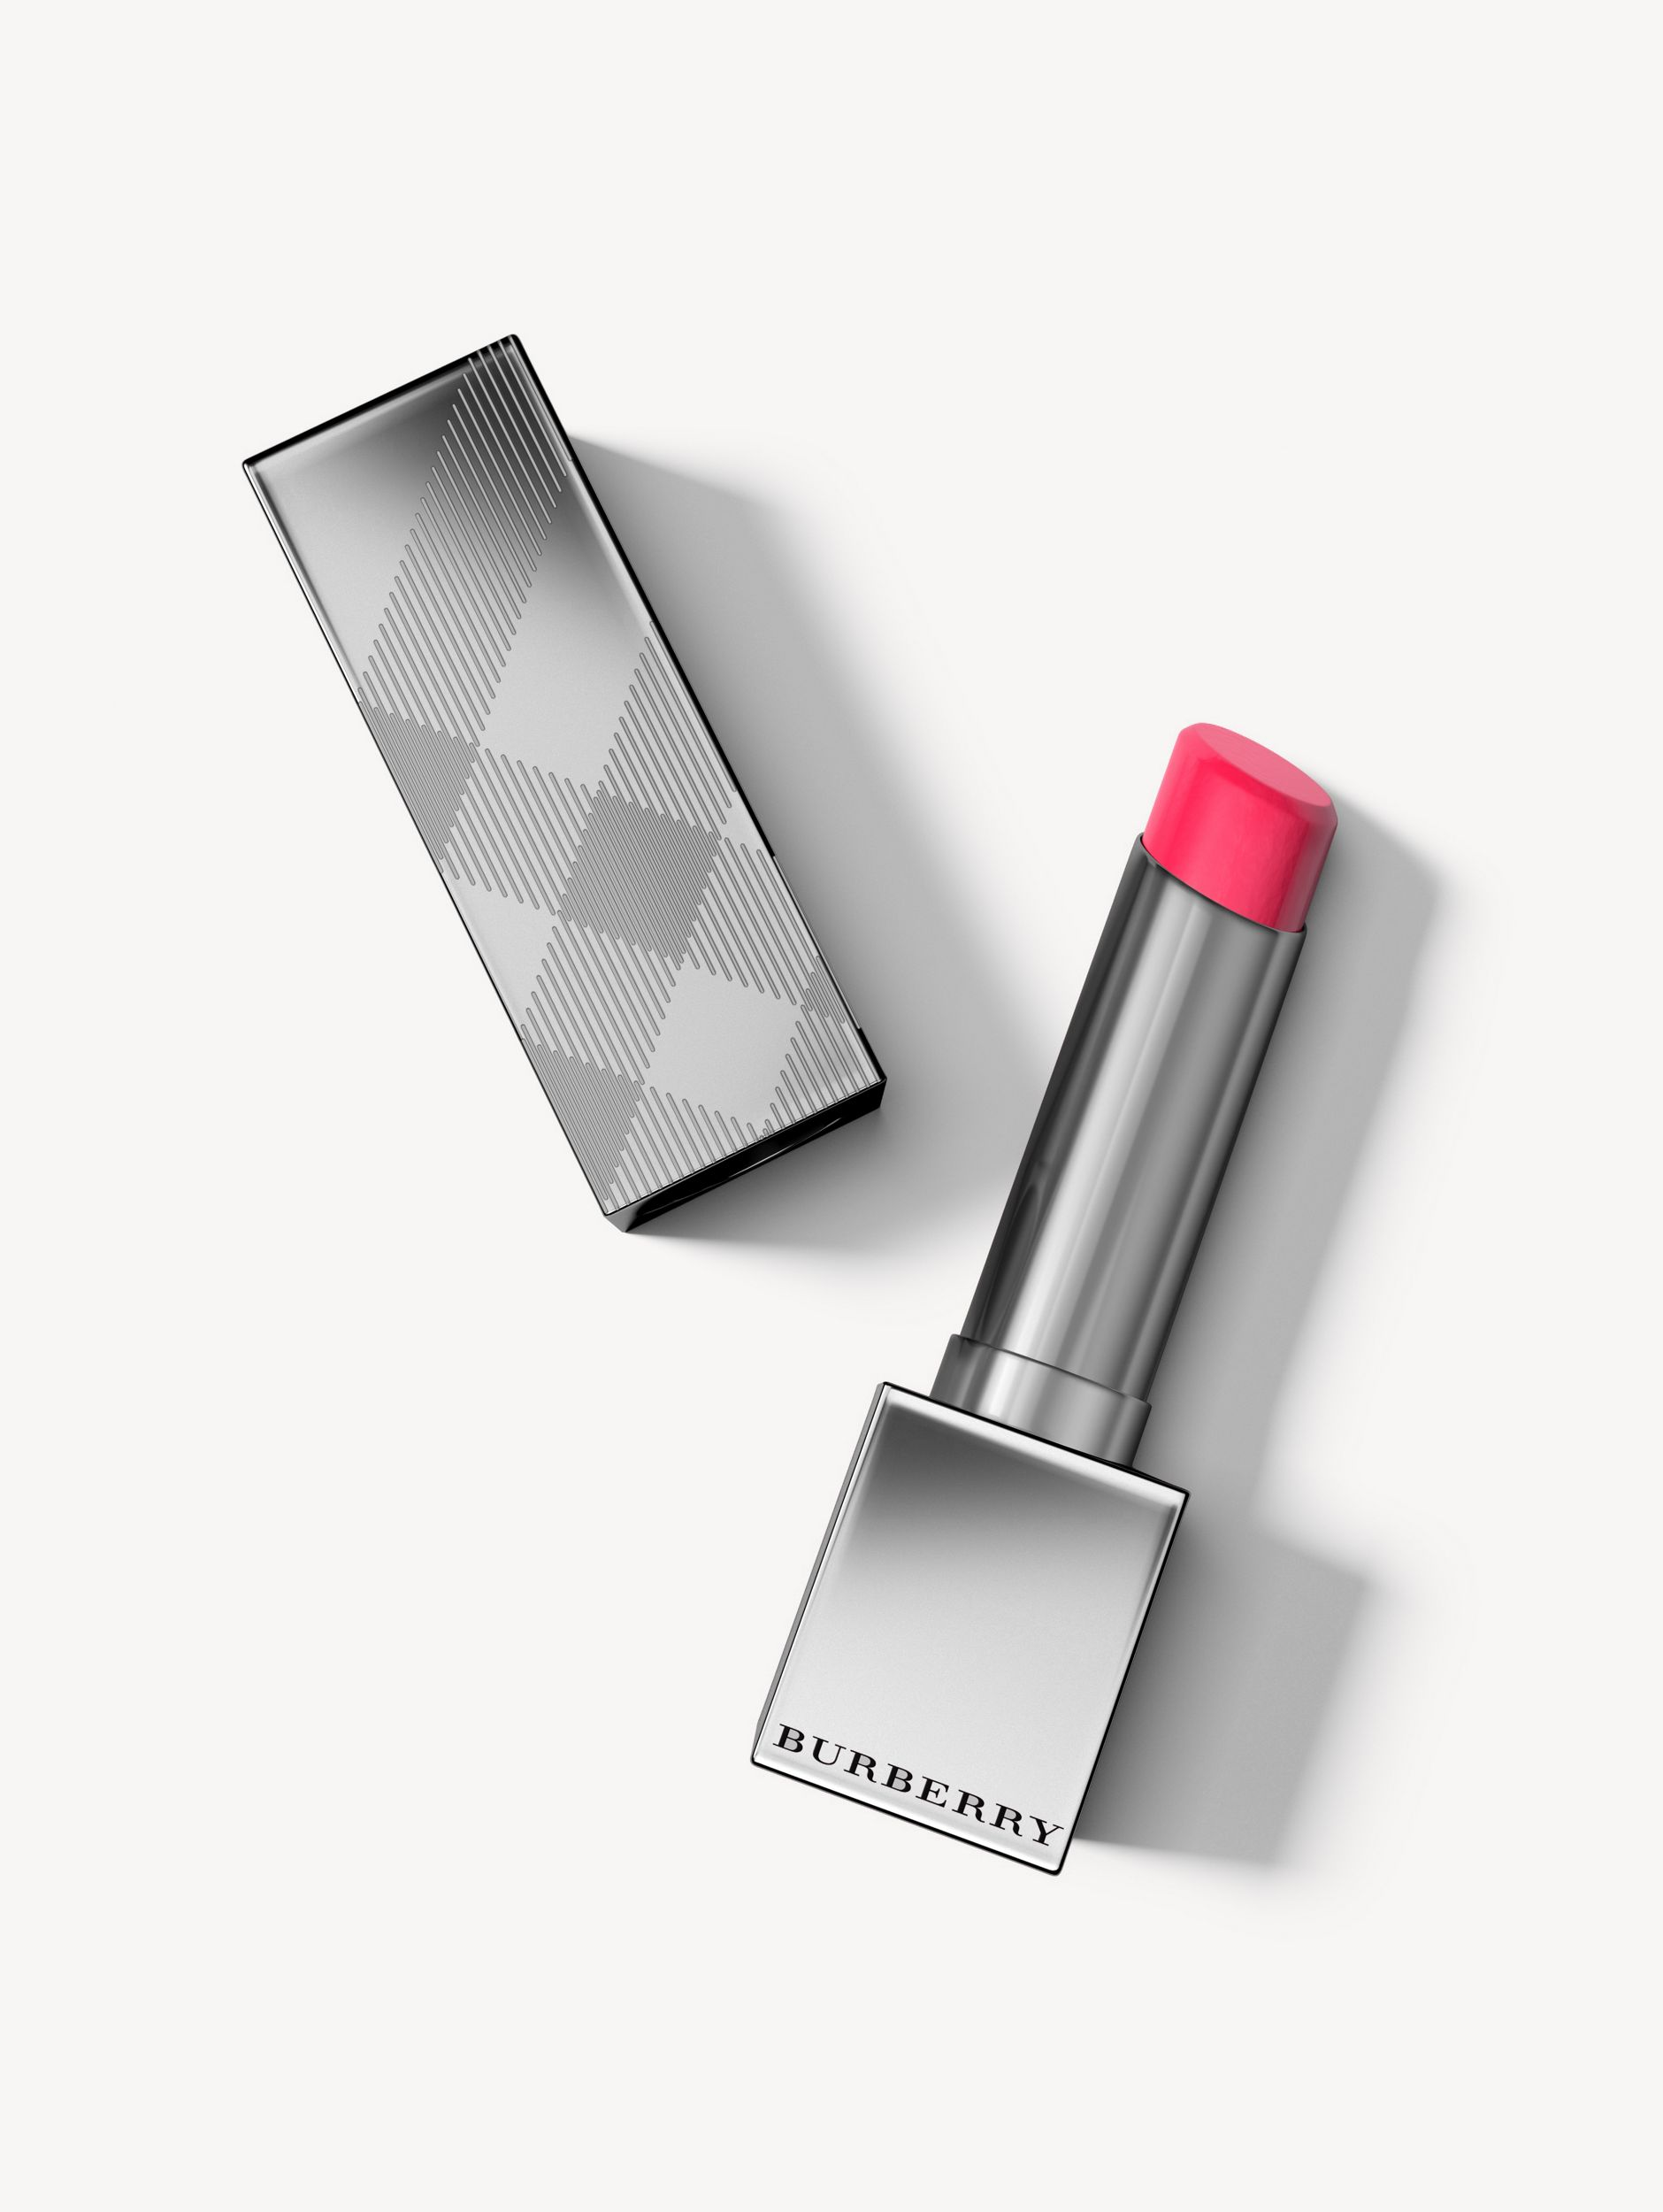 Burberry Kisses Sheer – Bright Pink No.233 - Women | Burberry - 1